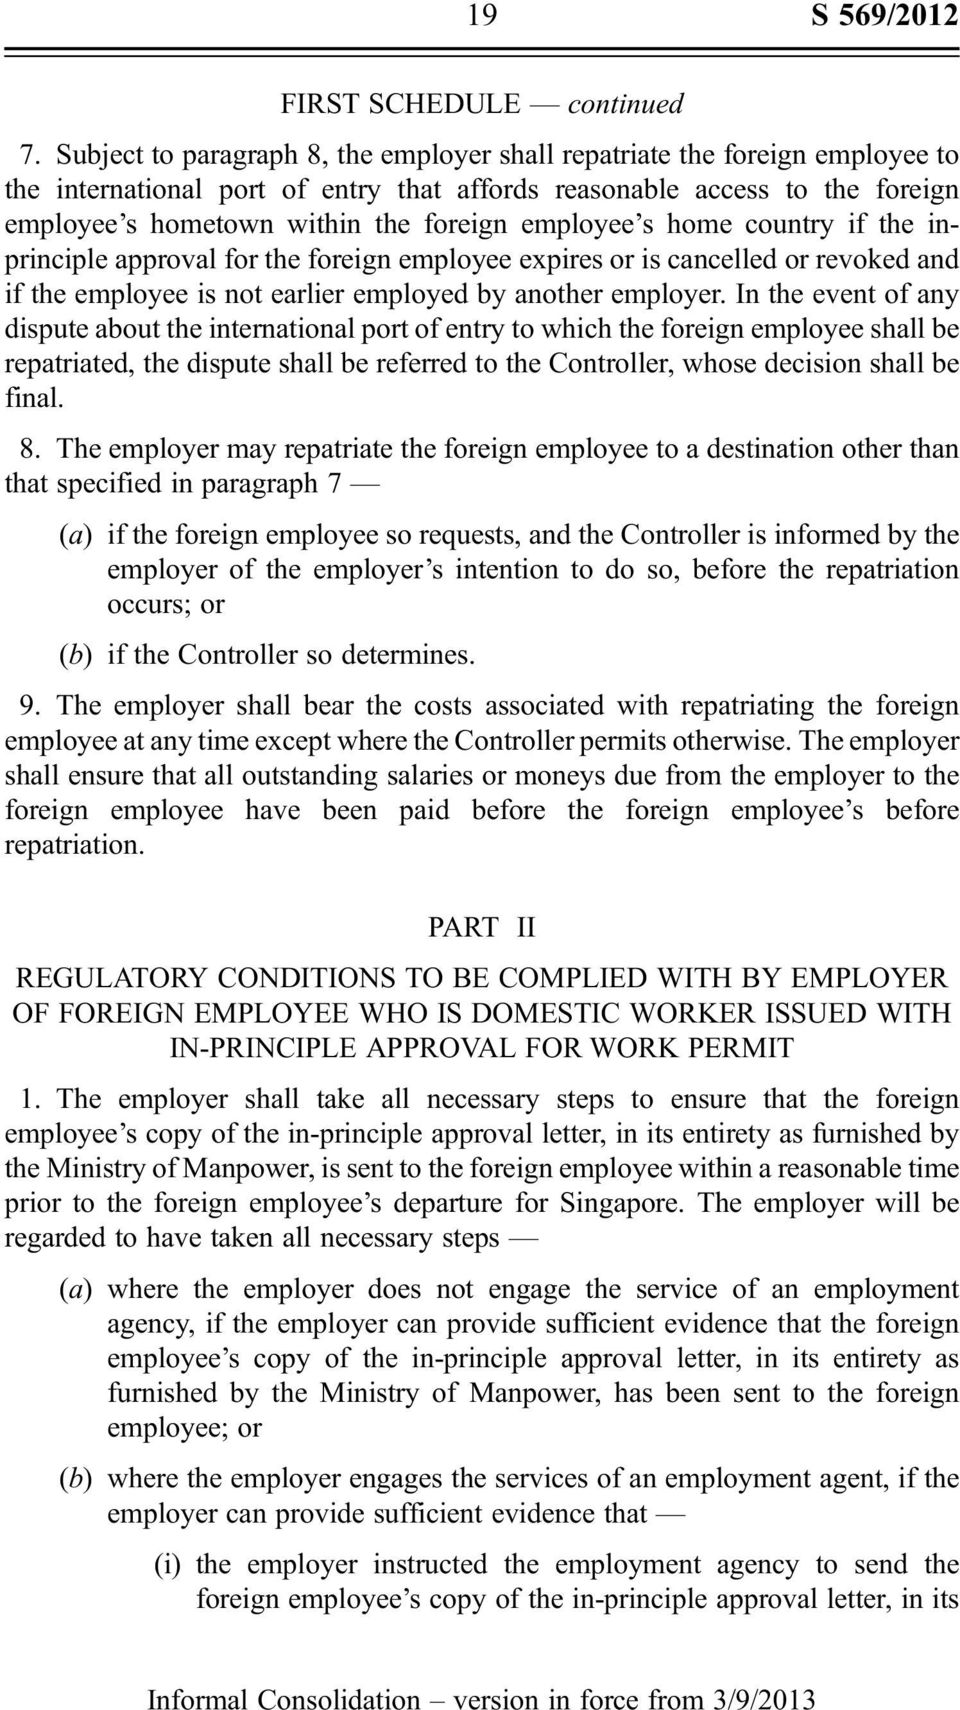 employee s home country if the inprinciple approval for the foreign employee expires or is cancelled or revoked and if the employee is not earlier employed by another employer.